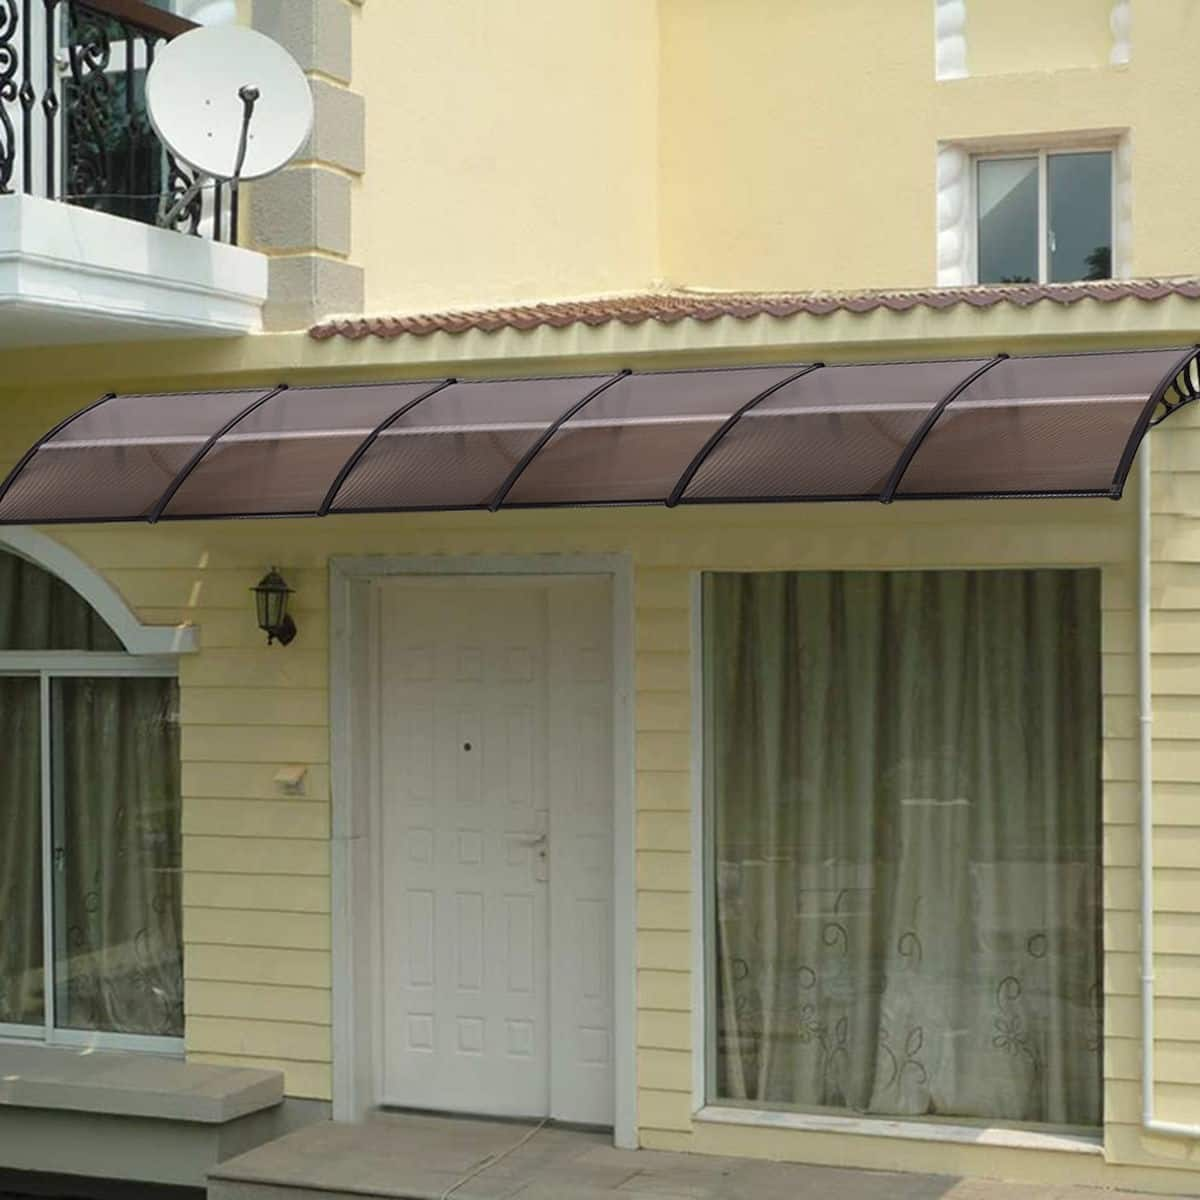 "Costway 40"" x 40"" Outdoor Polycarbonate Front Door Window Awning Canopy - $39.95 + Free Shipping"